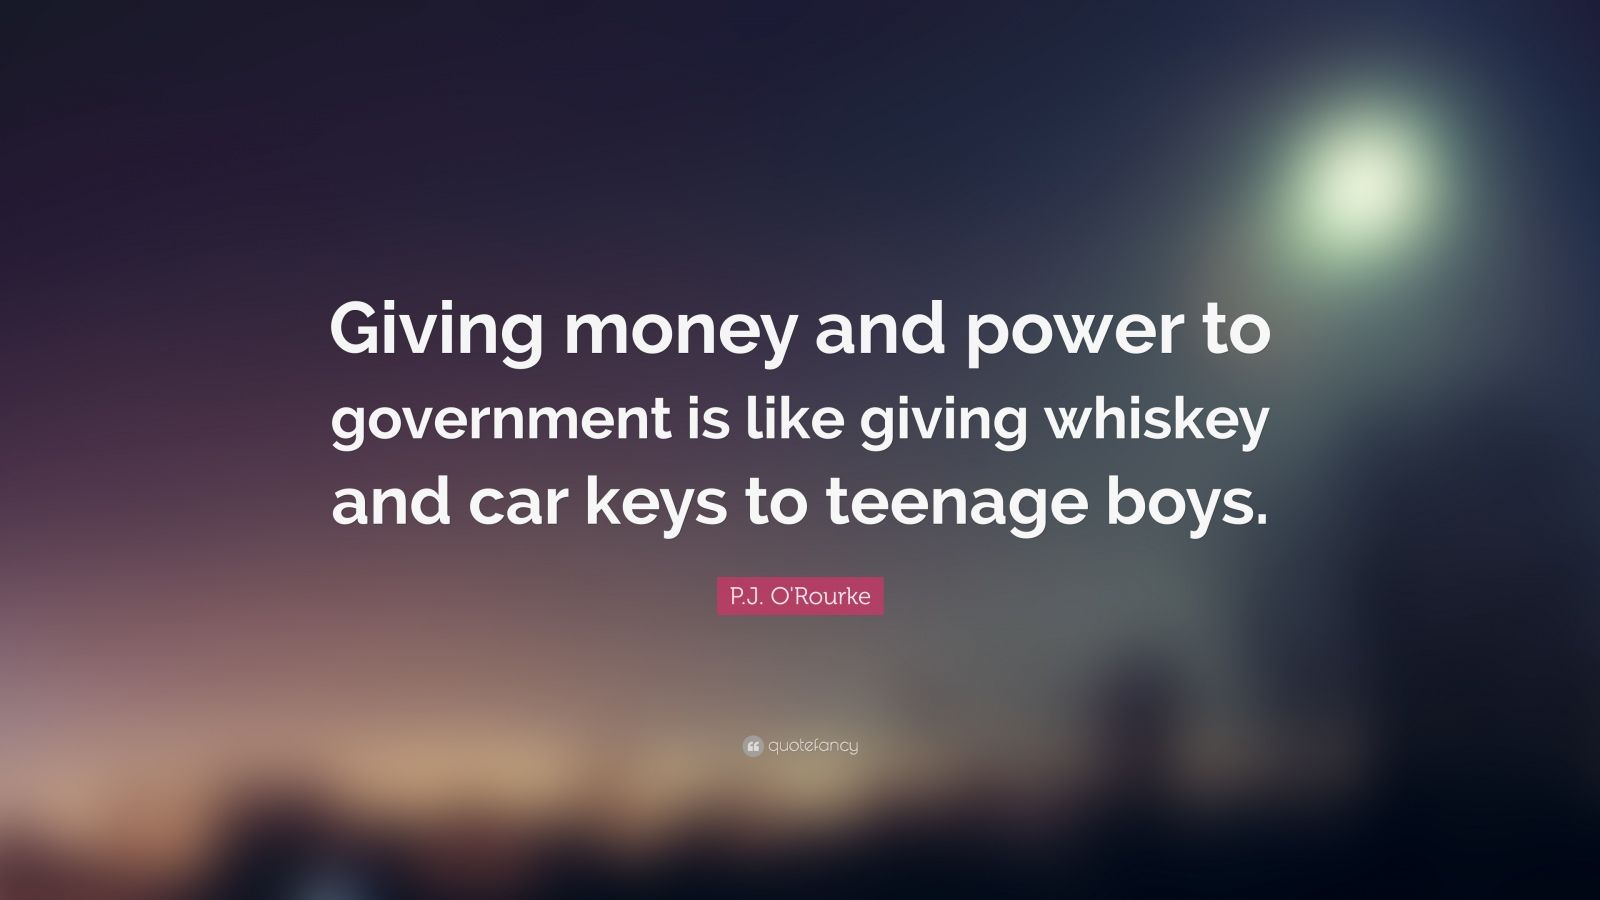 """P.J. O'Rourke Quote: """"Giving money and power to government is like giving whiskey and car keys to teenage boys."""""""